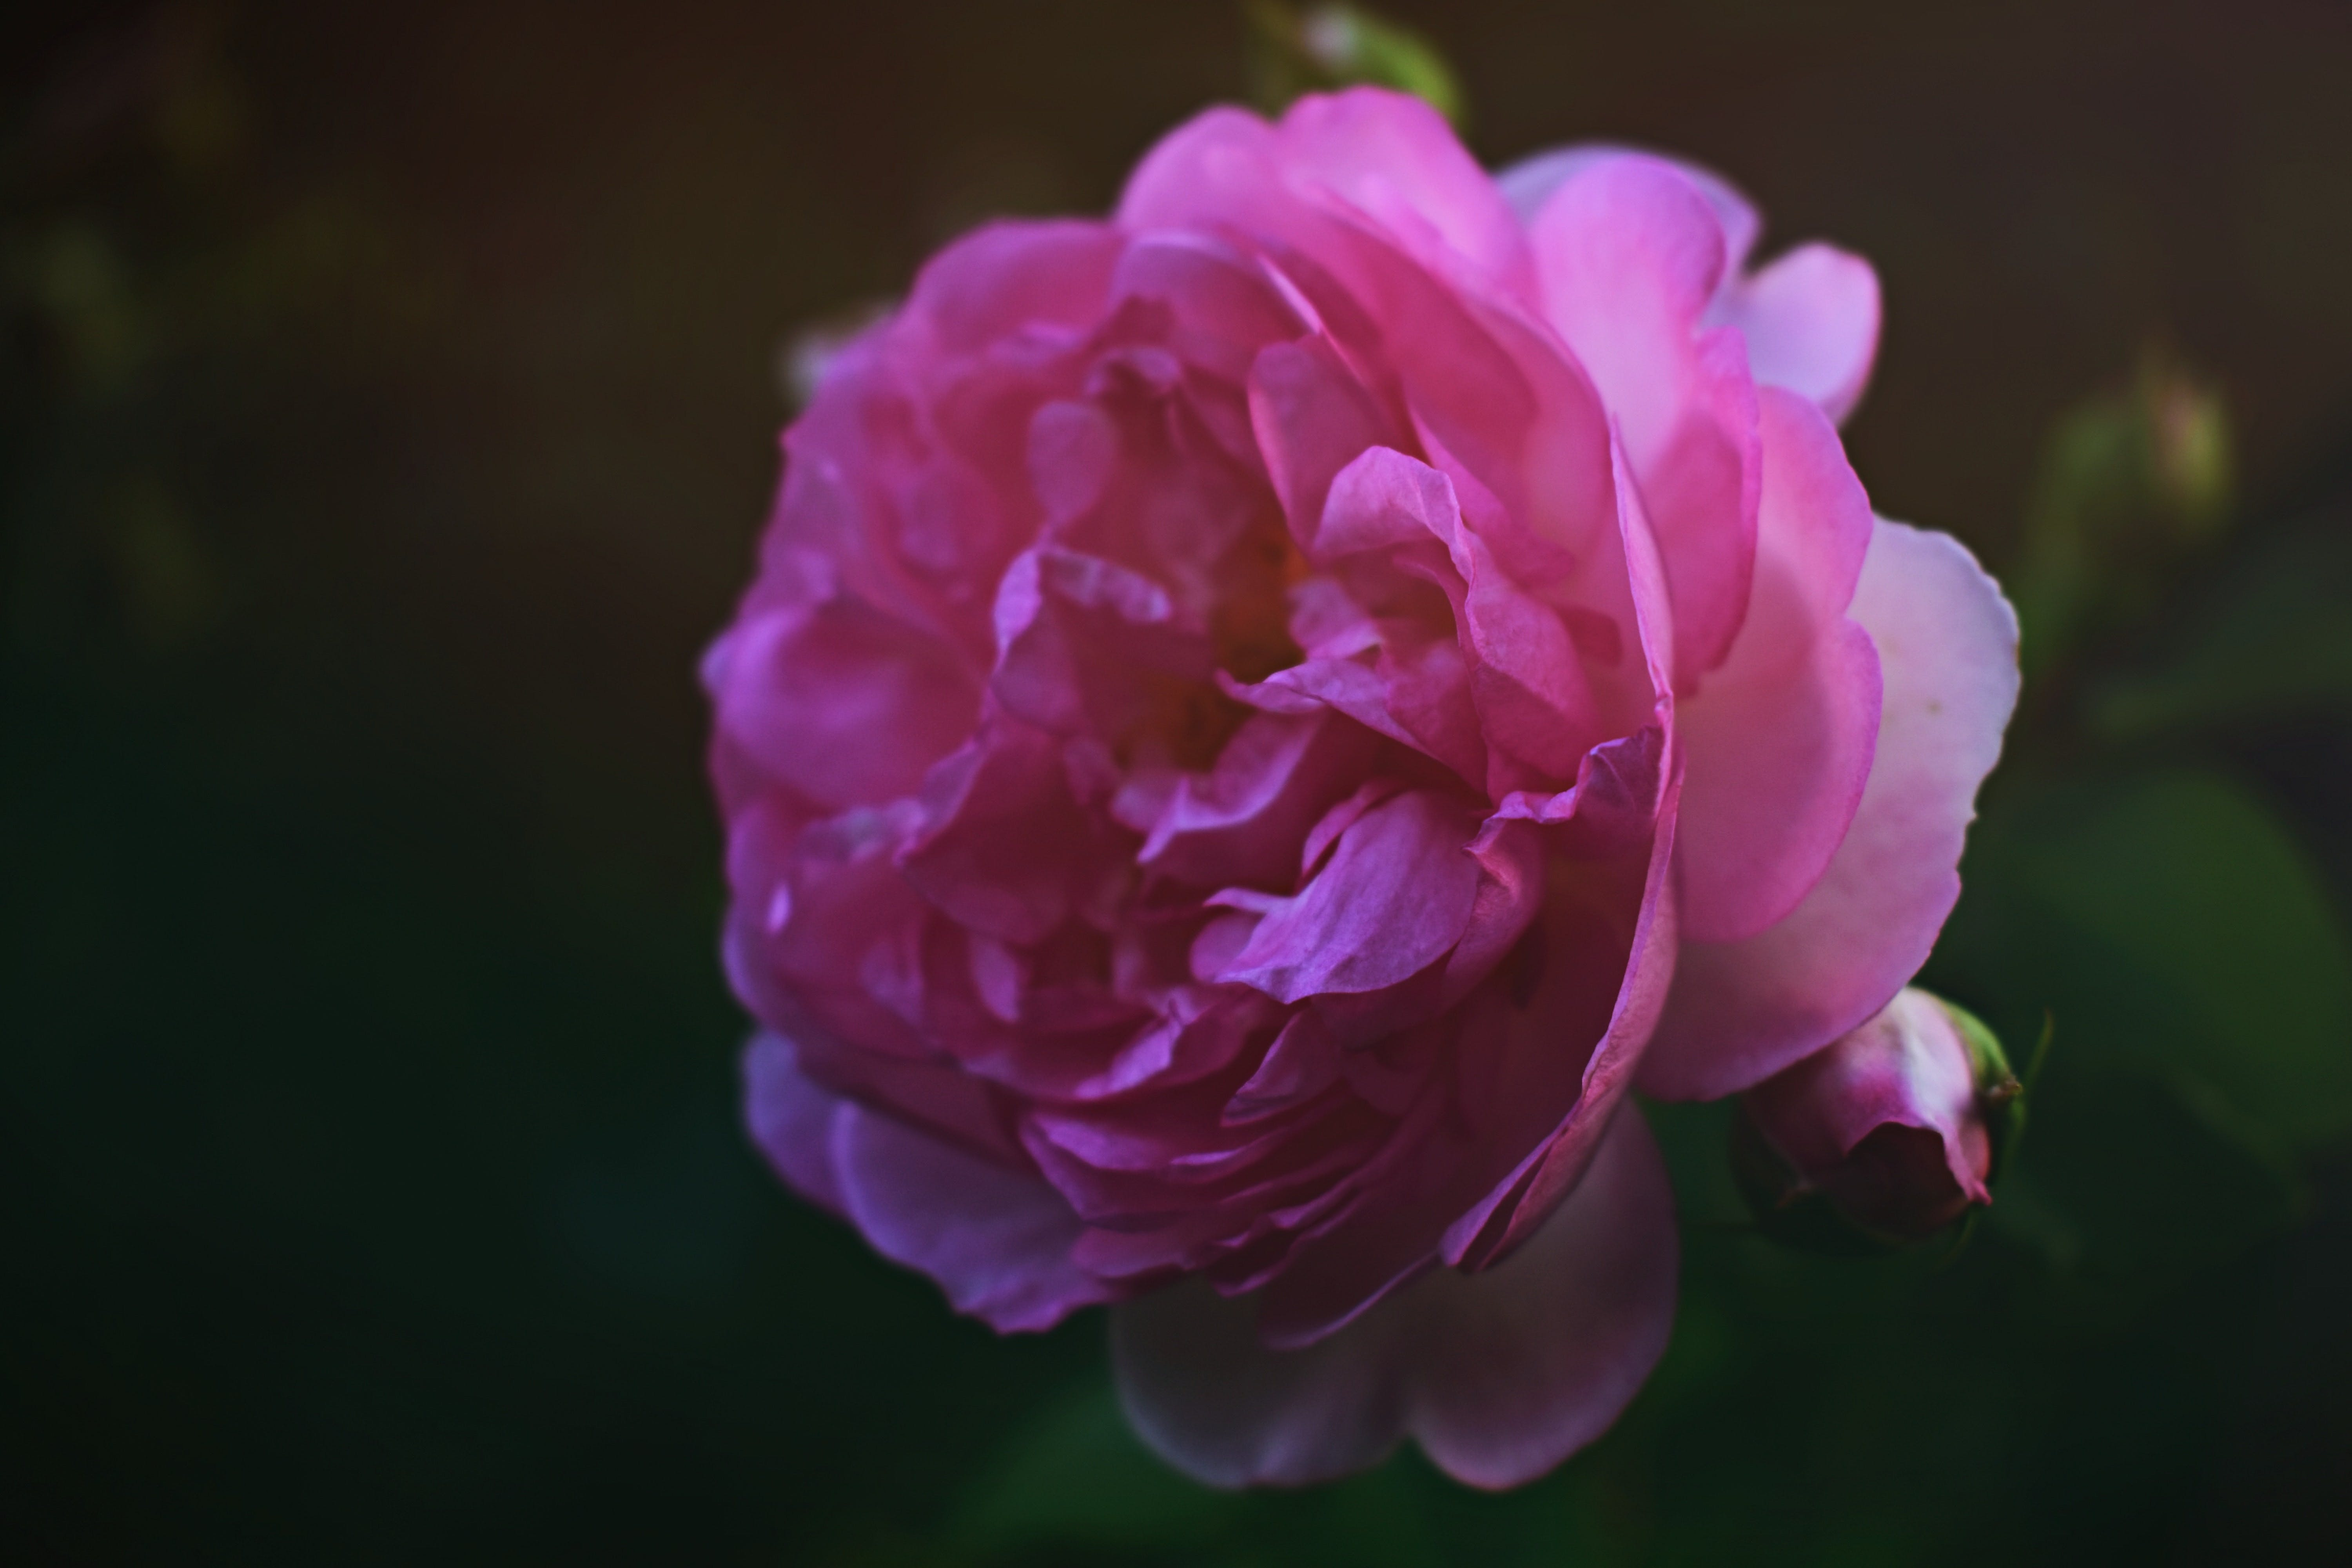 Close-up Photography of Pink English Rose Flower